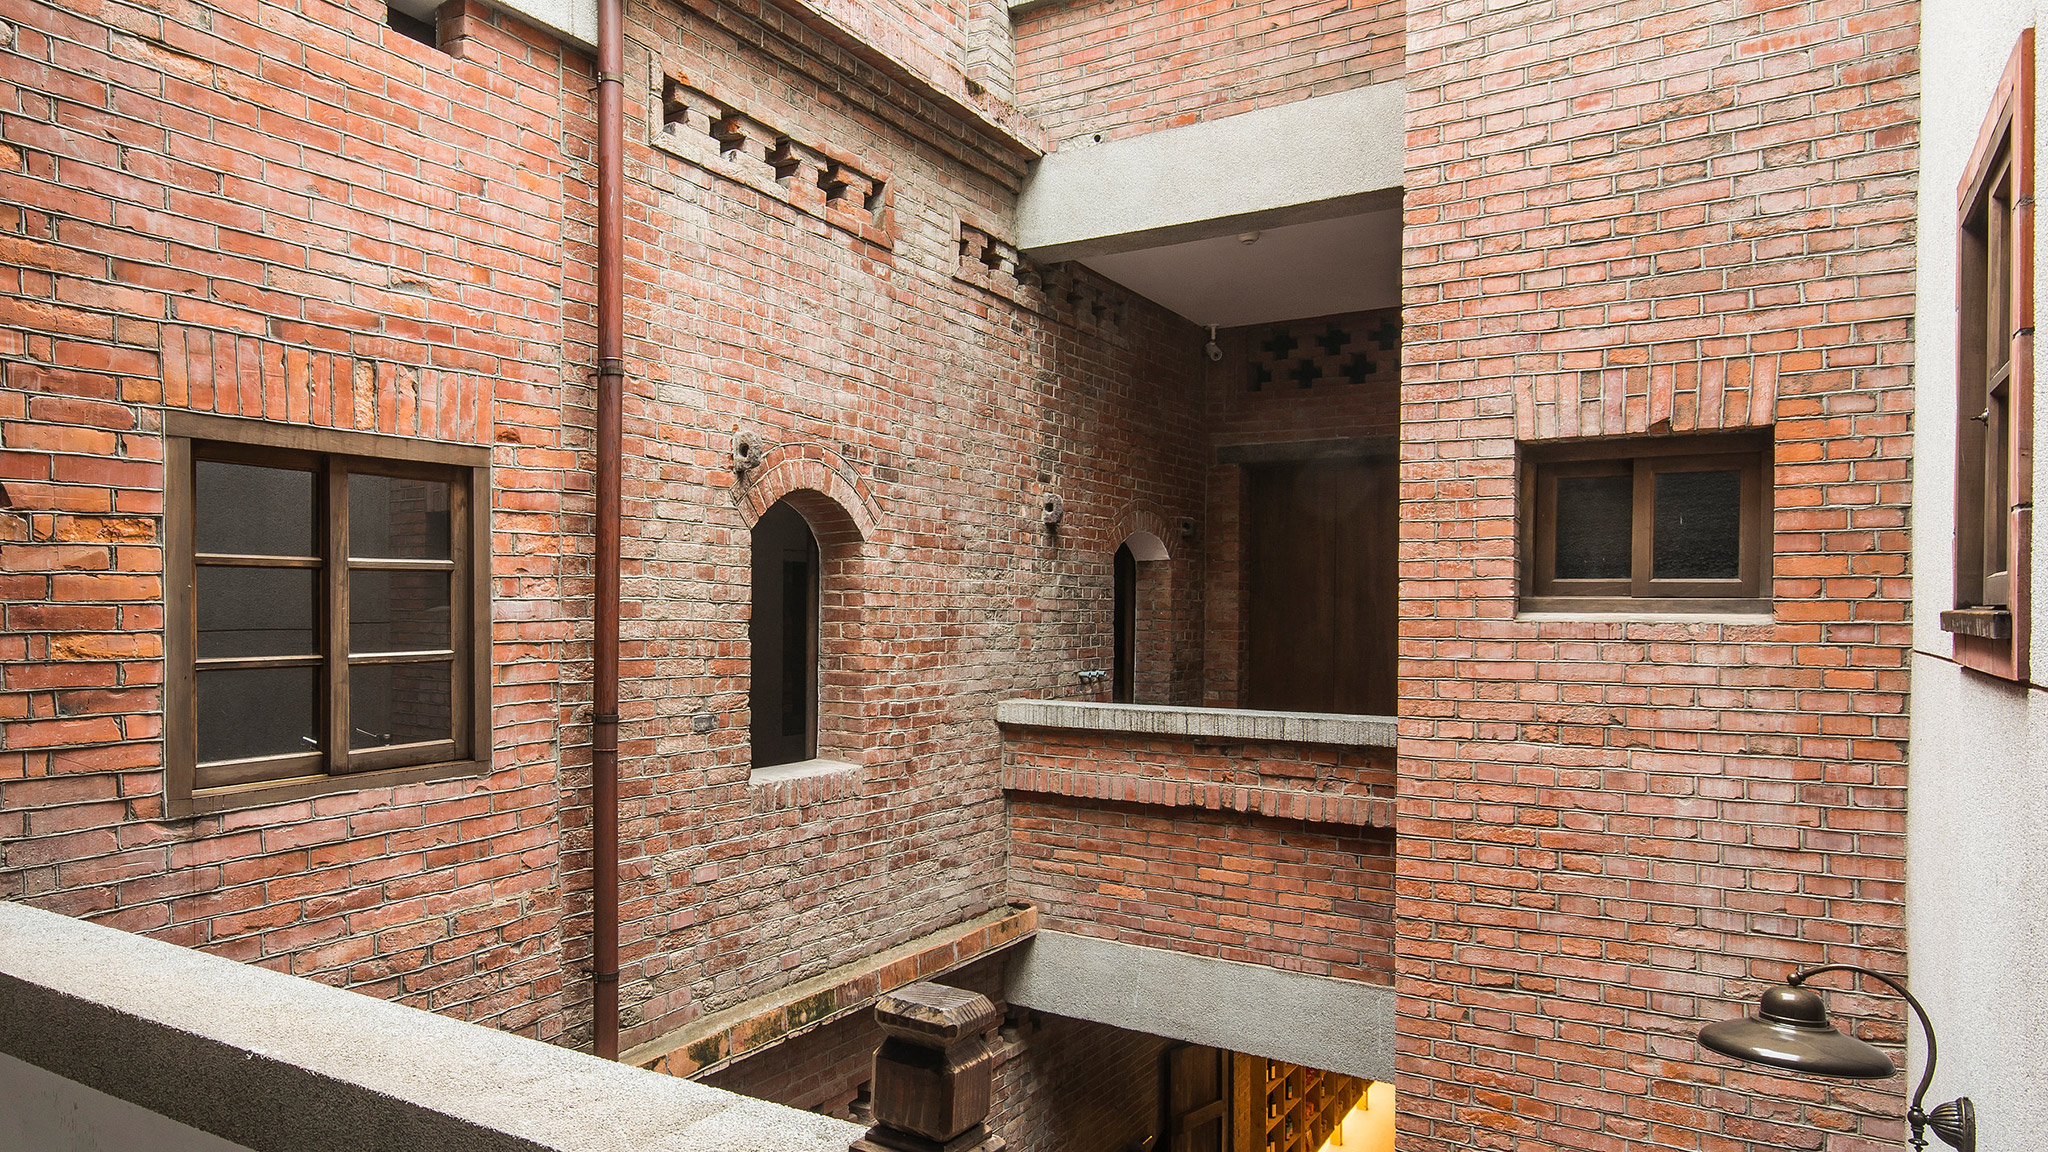 ... Architects Courtyard View From First Floor. Renovation Of An Old Rice  Warehouse By B + P ...